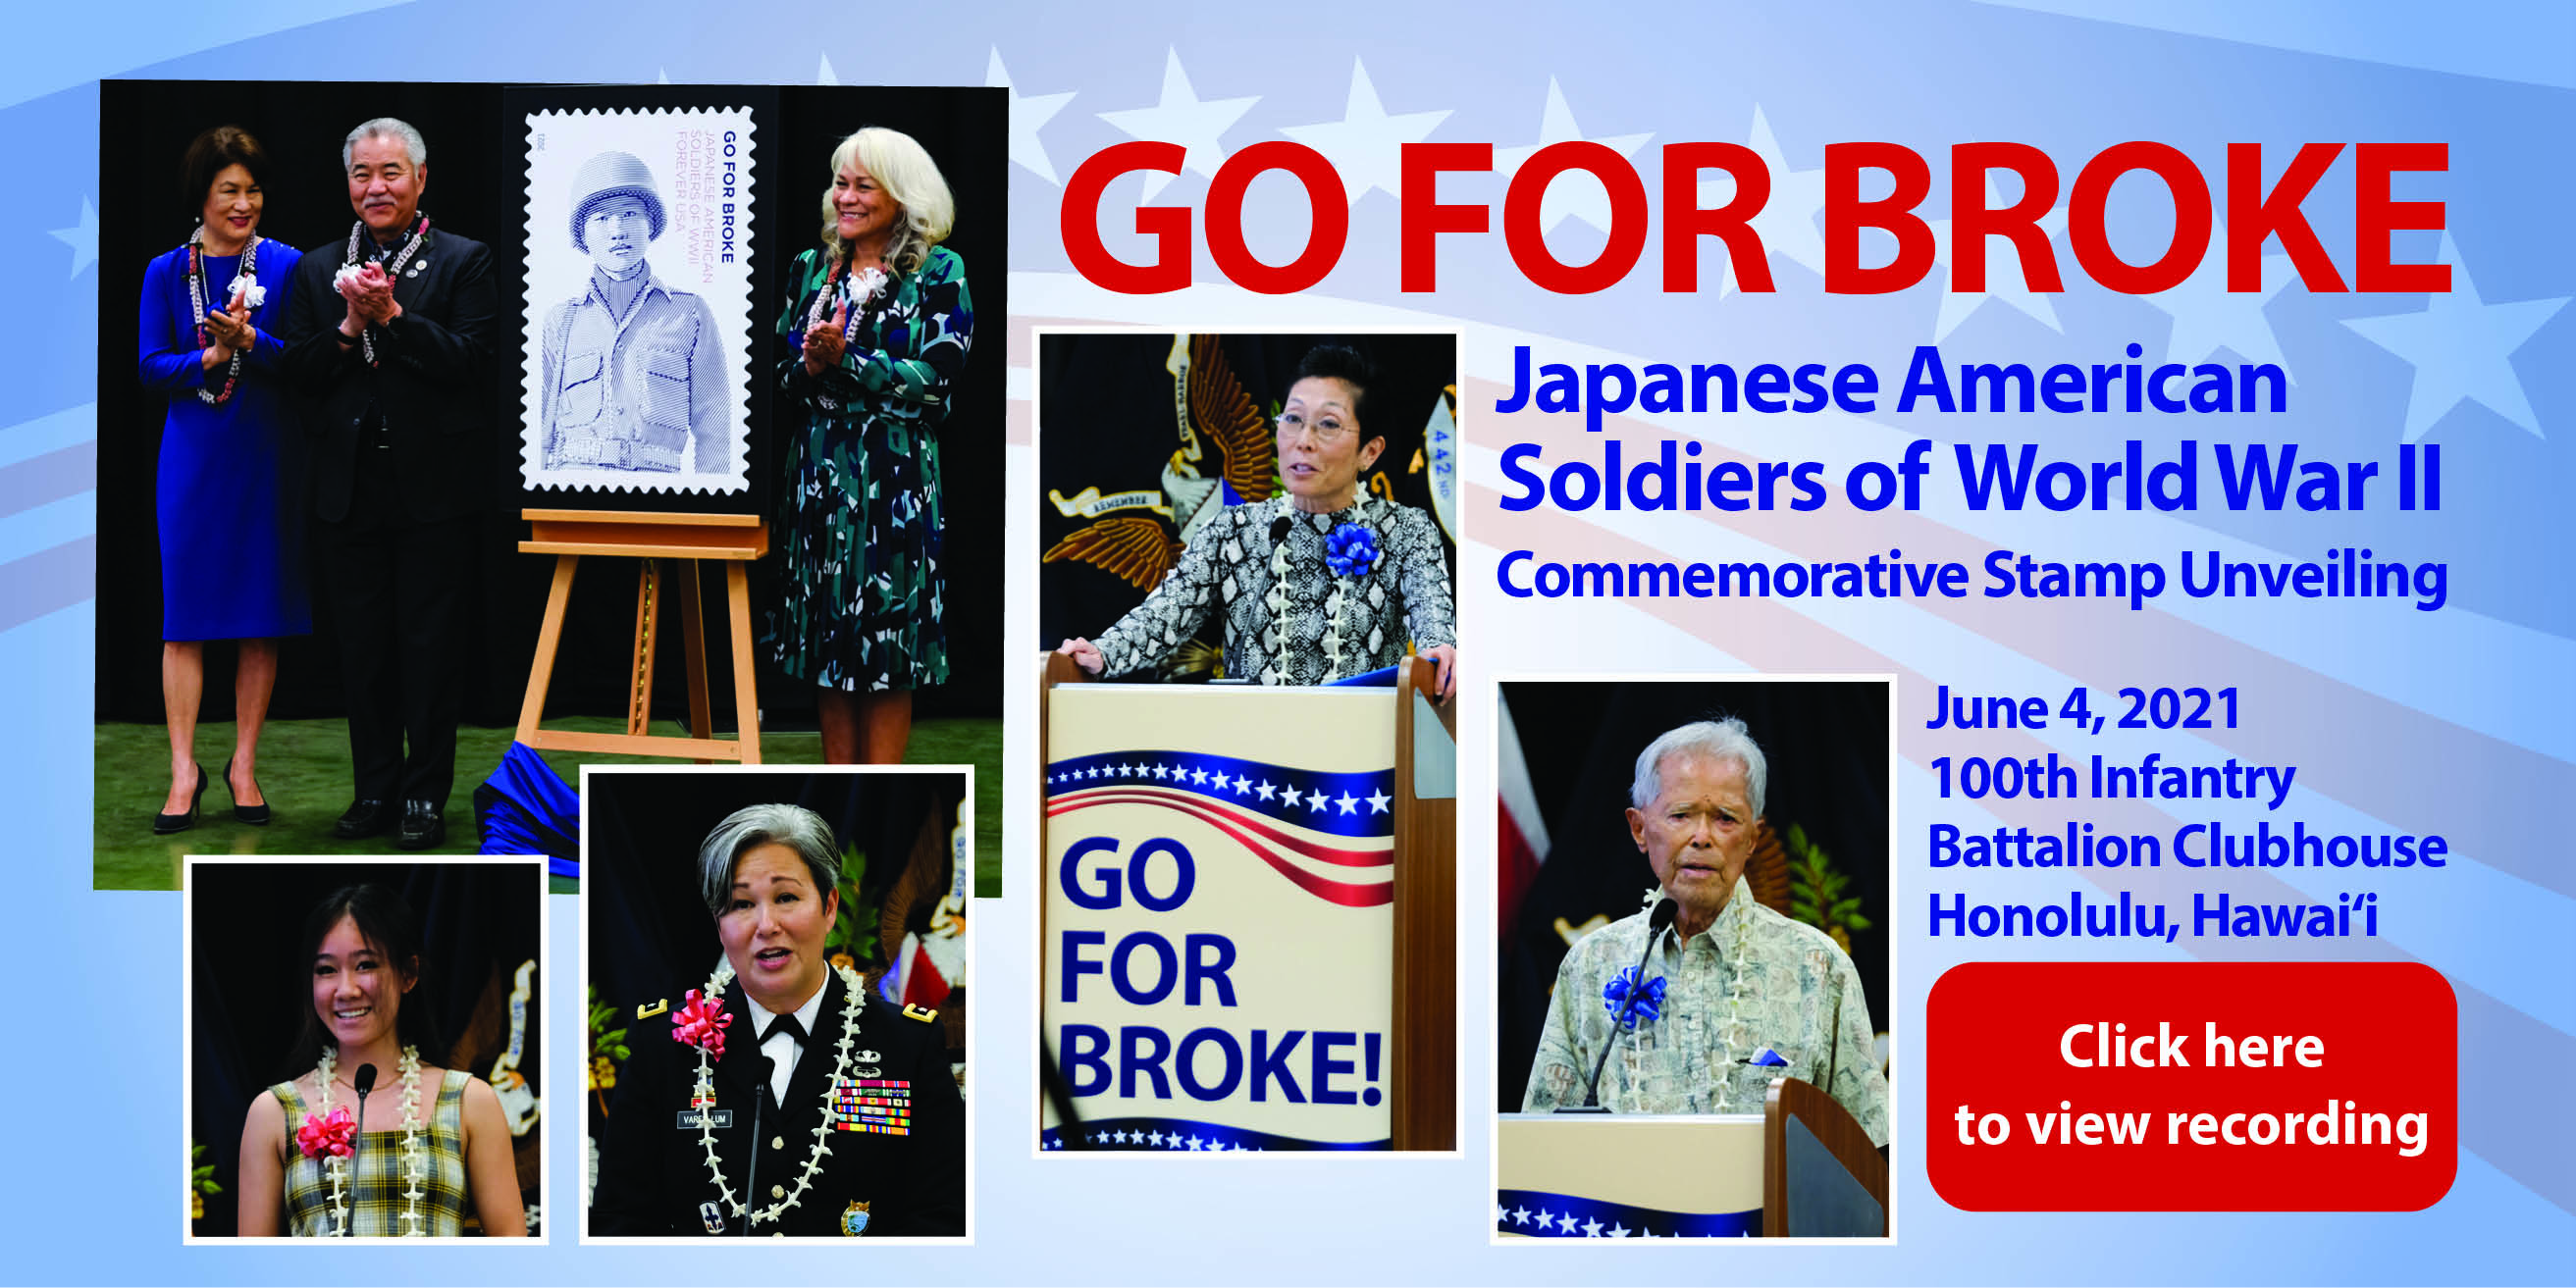 Banner image with link to Go For Broke: Japanese American Soldiers of World War II Commemorative Stamp Unveilingcontent